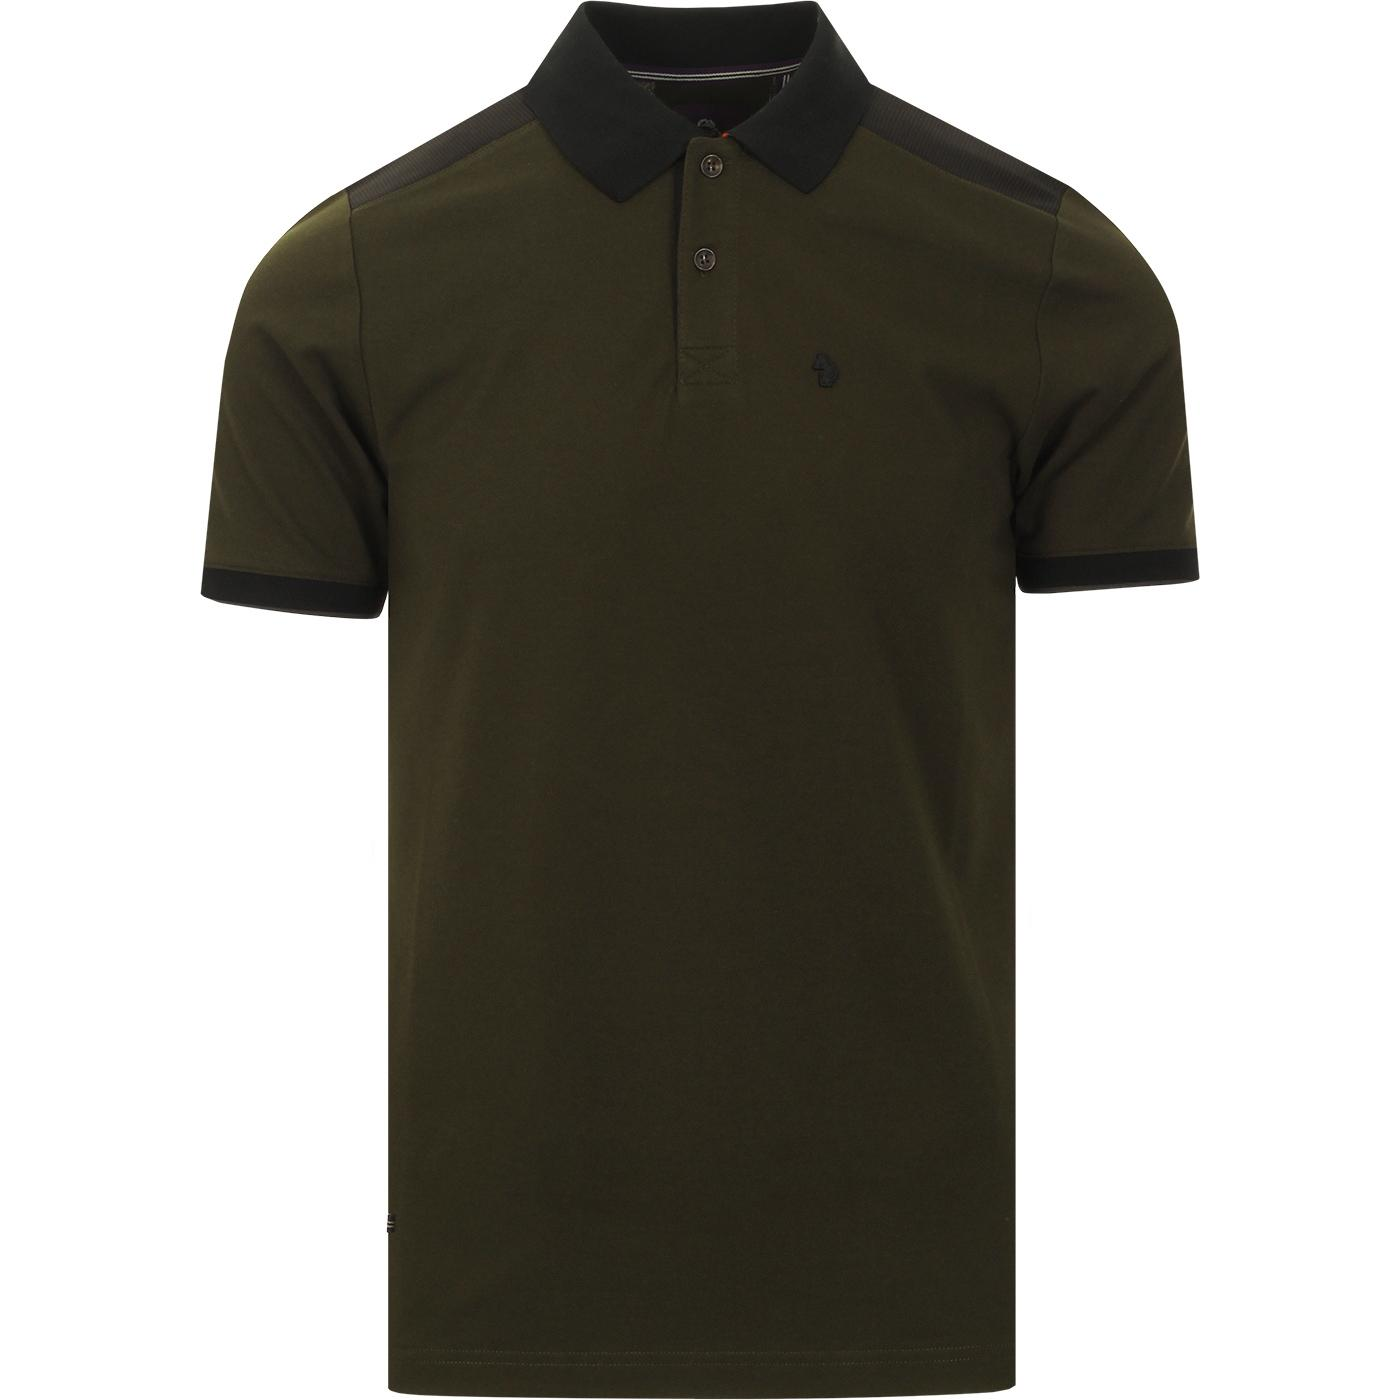 Newplant LUKE Jacquard Shoulder Panel Polo (Olive)